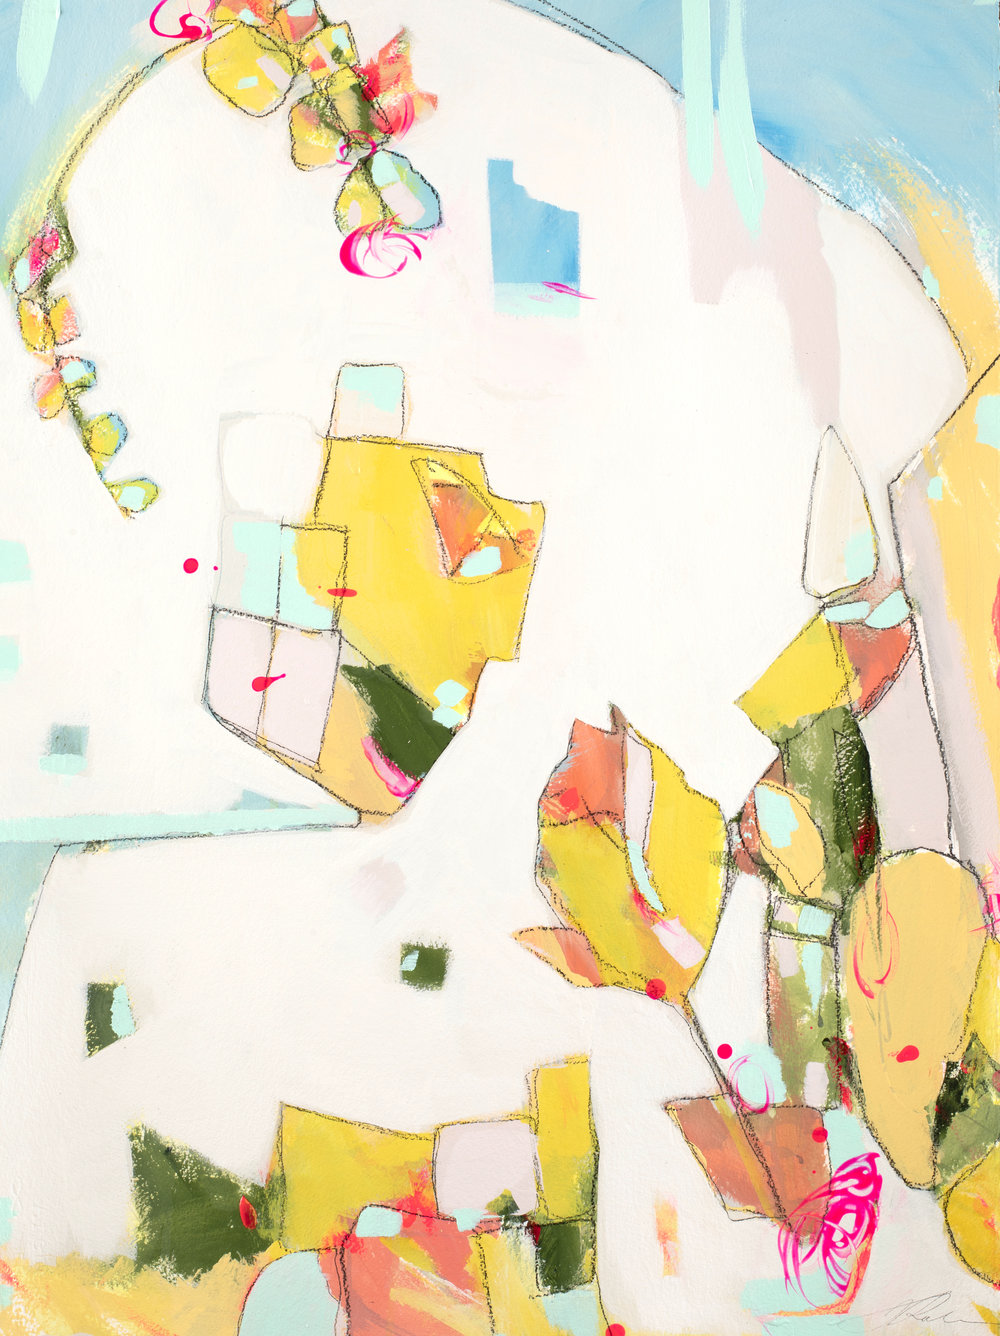 """The Village Where He Lives - 26.5"""" x 34.75""""Mixed media on watercolor paper, framed$1250"""